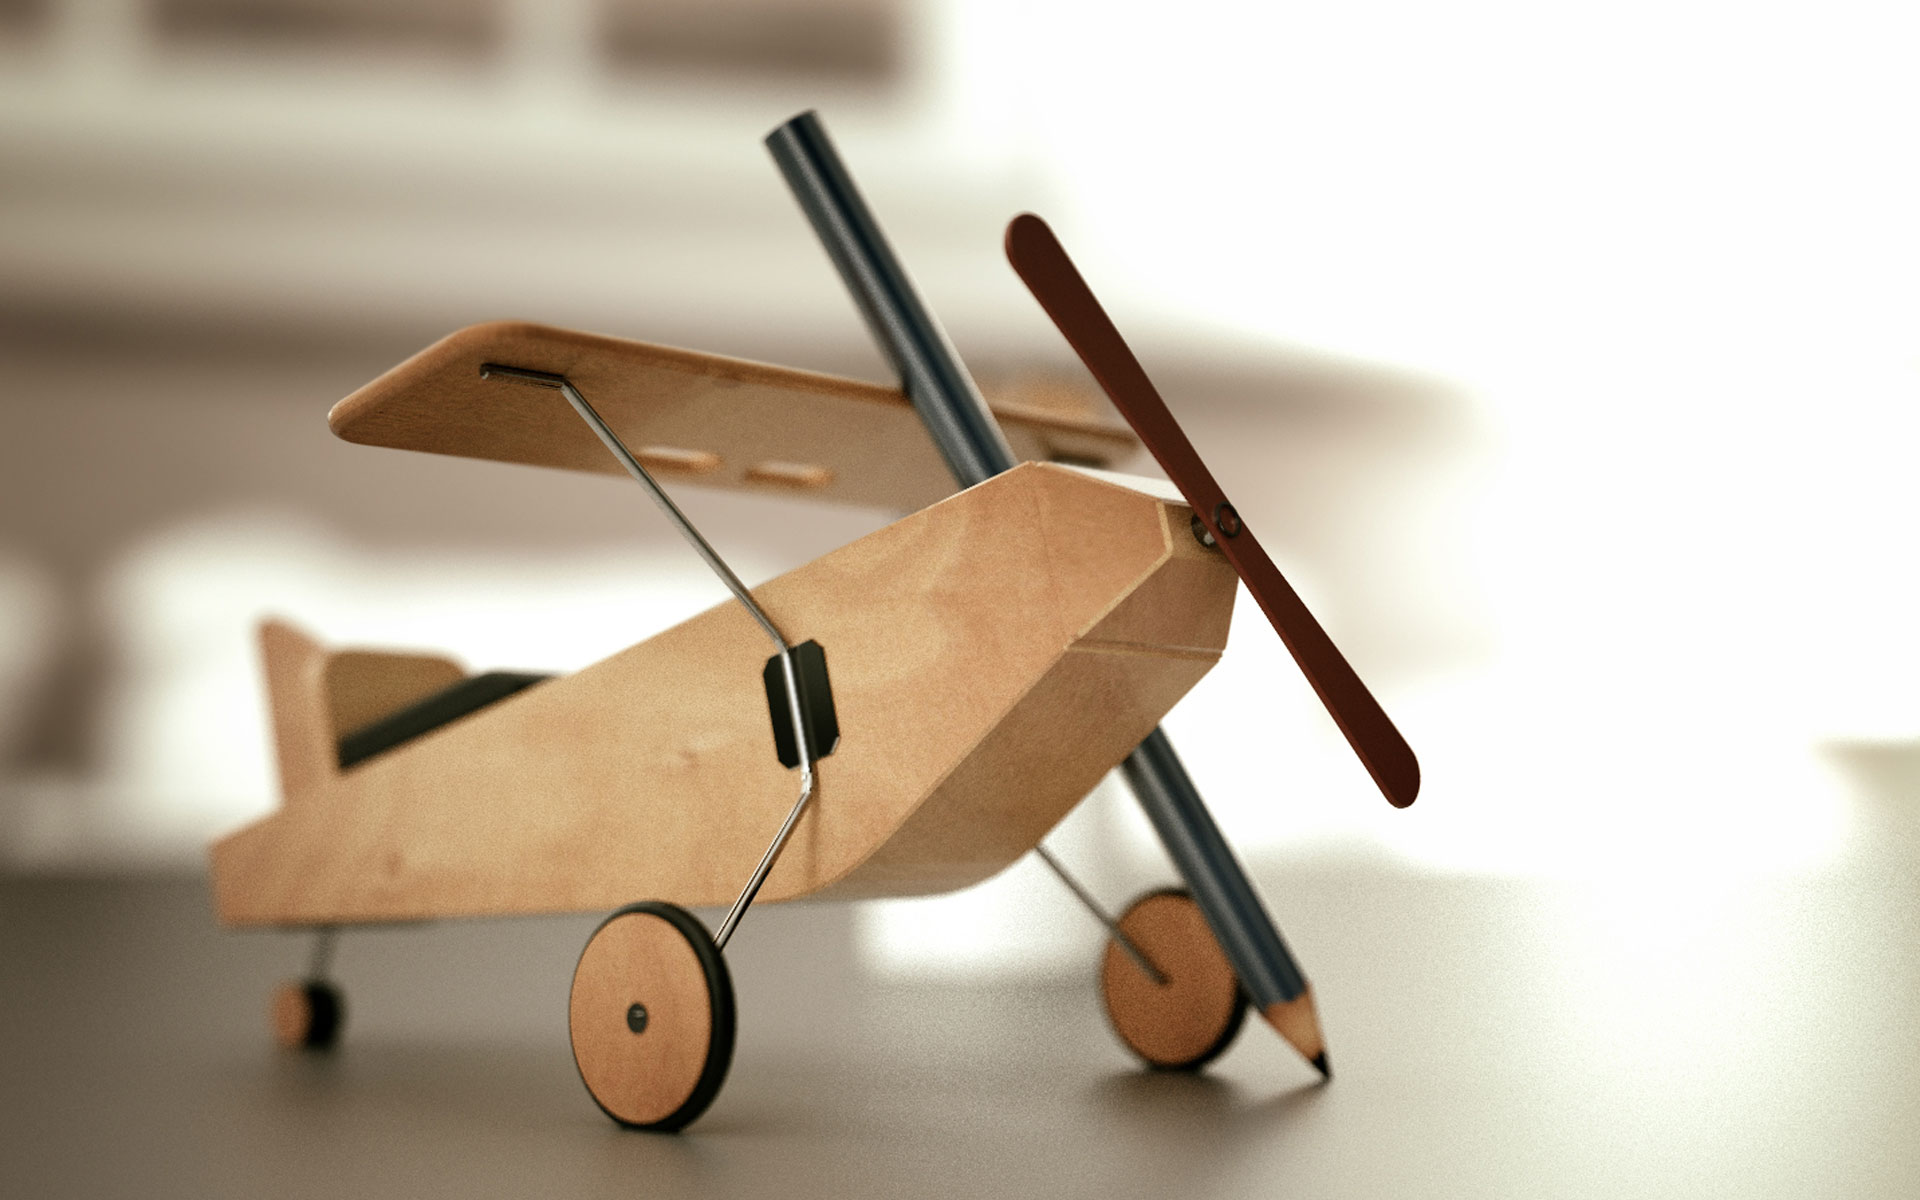 Toy Airplane HD Wallpaper